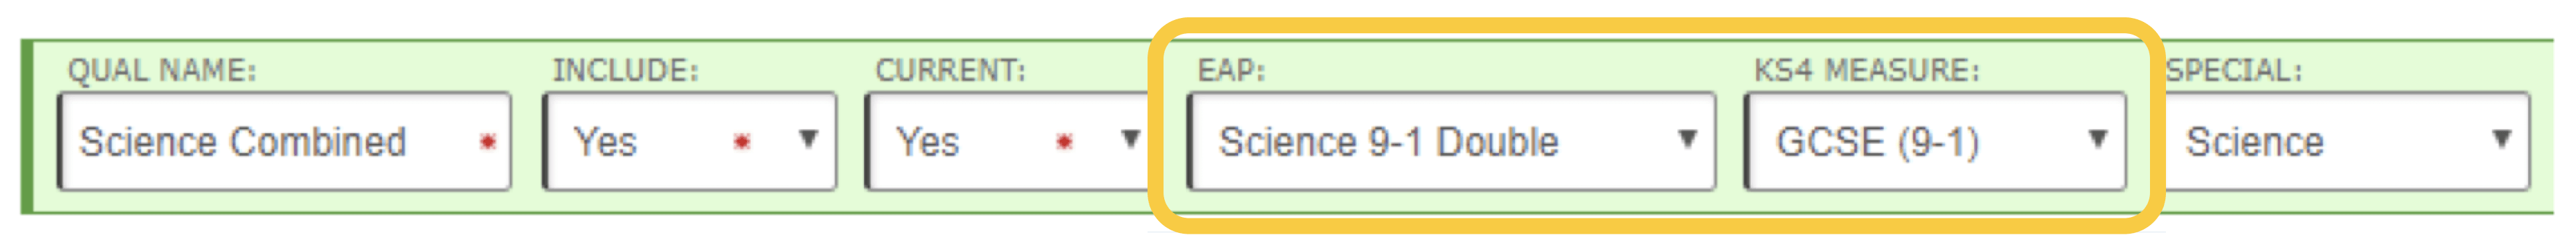 Emily Kirkby Author At Sisra Ltd Ks3 Physics Electric Current And Potential Difference Revision 5 4 Eap Allows You To Correctly Set Up Combined Science As One Qualification But A Double Award Should Have Just Green Row Using An